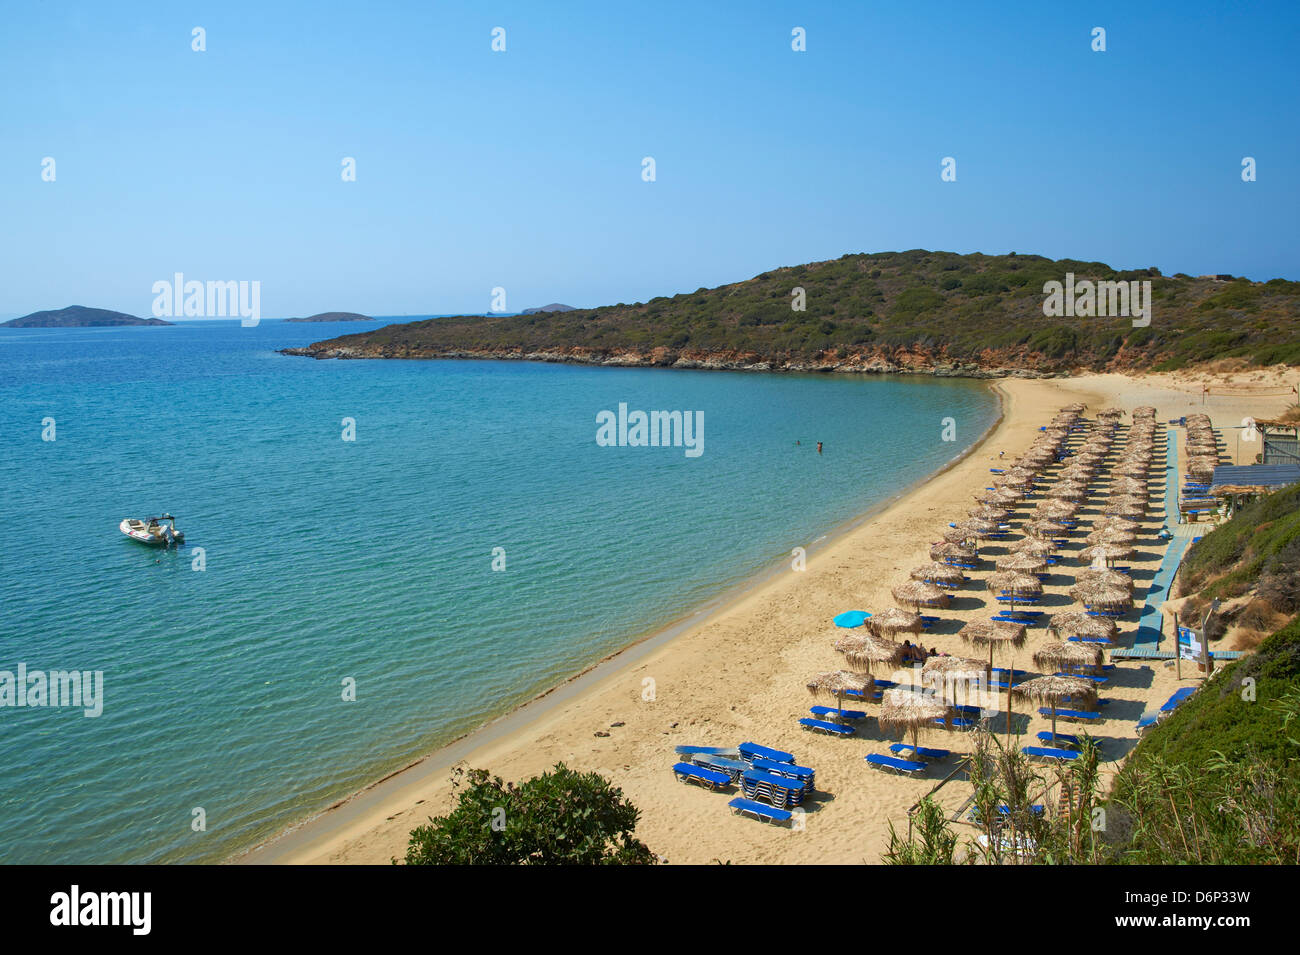 agios petros strand insel andros kykladen griechische inseln griechenland europa stockfoto. Black Bedroom Furniture Sets. Home Design Ideas